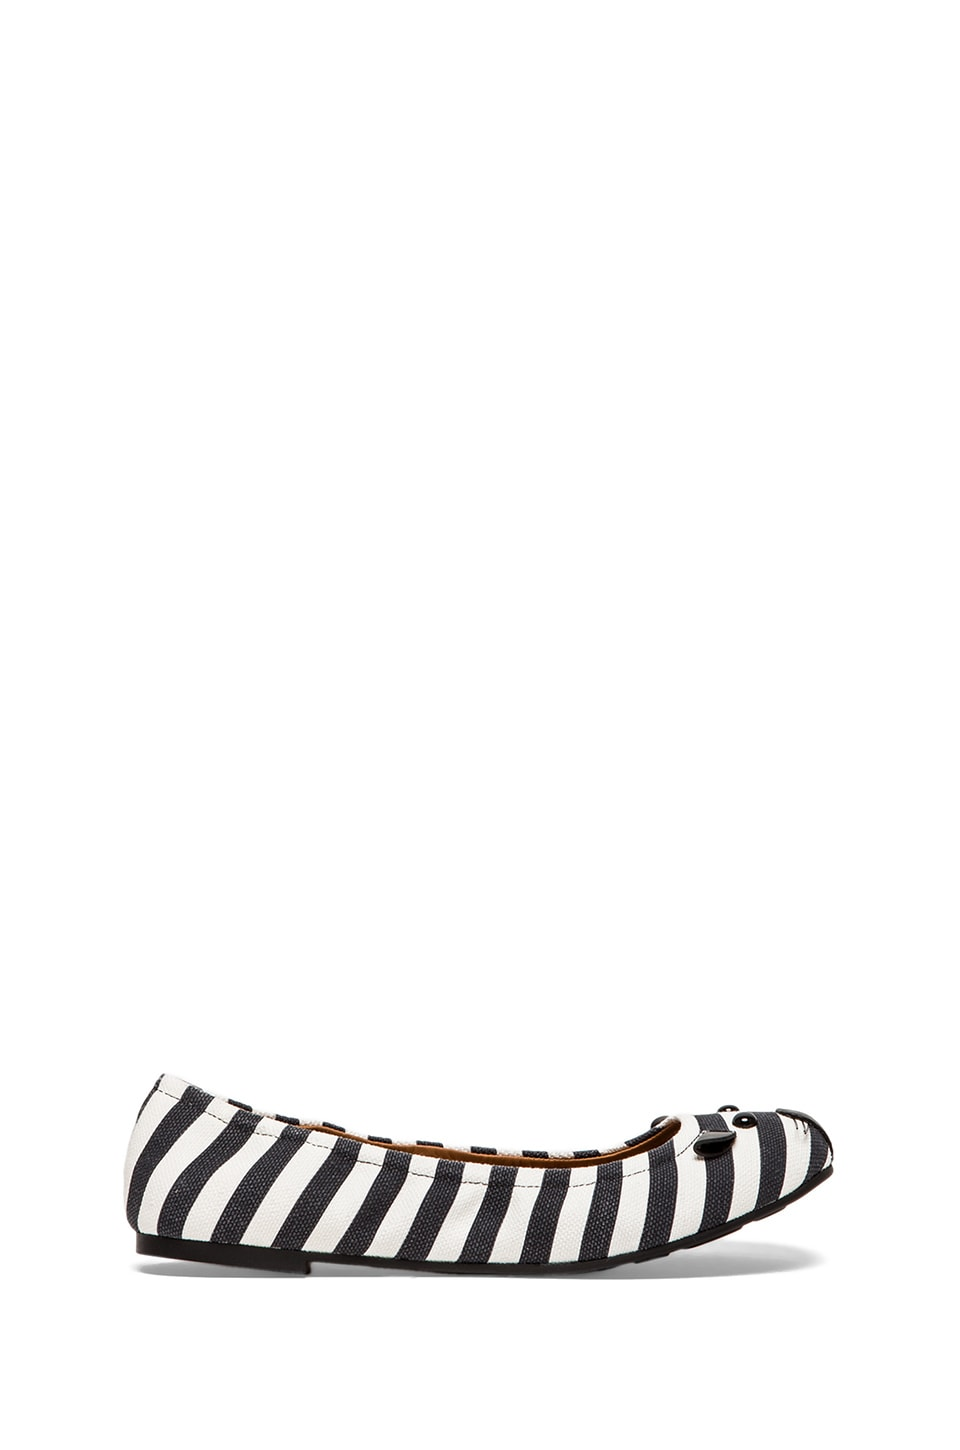 Marc by Marc Jacobs Striped Canvas Mouse Ballerina Flat in Black & White